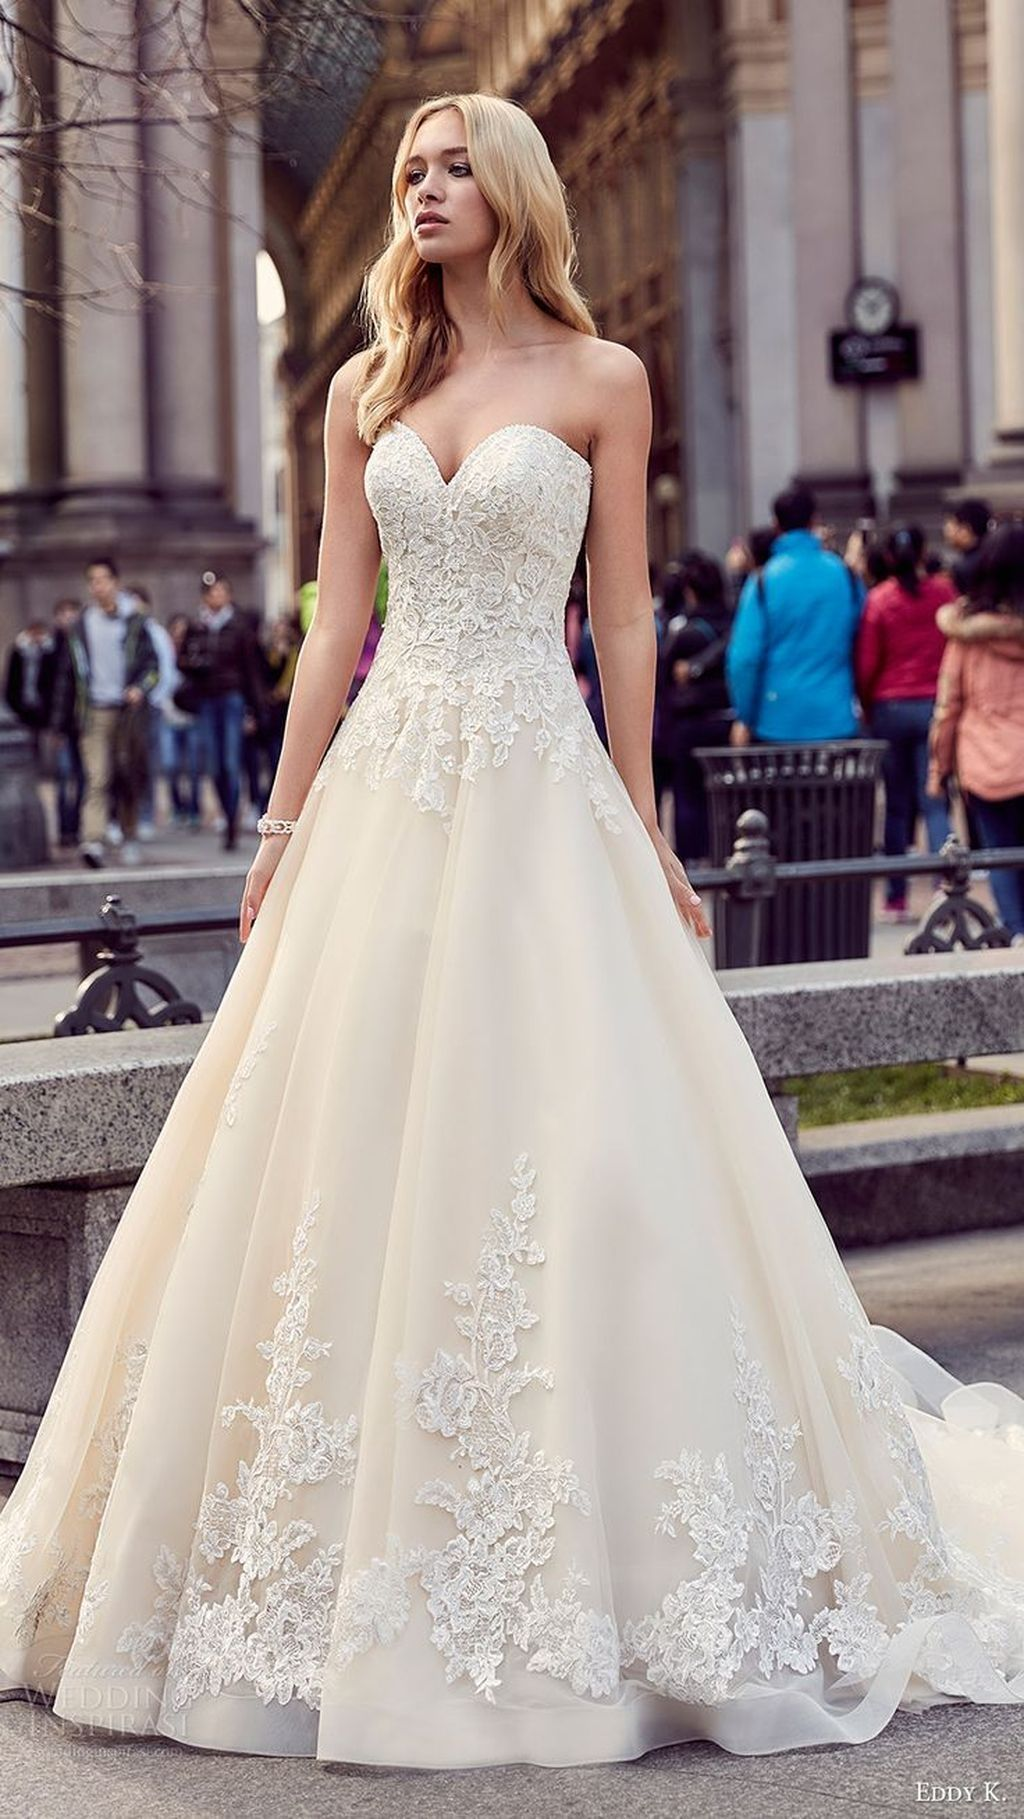 Sweetheart strapless wedding dress   Simple but Beautiful Strapless Wedding Gown Ideas Trends